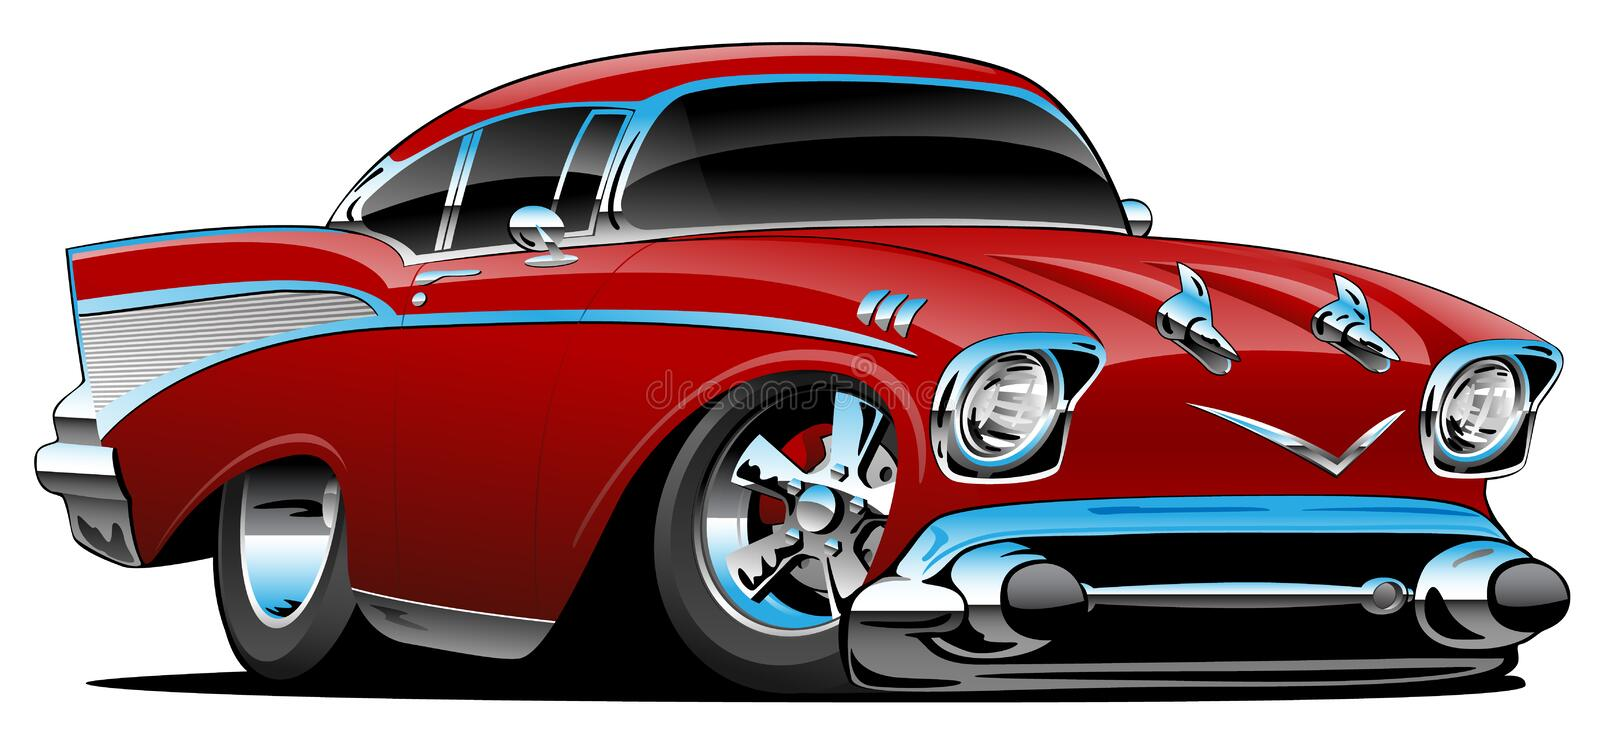 Classic hot rod 57 muscle car, low profile, big tires and rims, candy apple red, cartoon vector illustration stock illustration